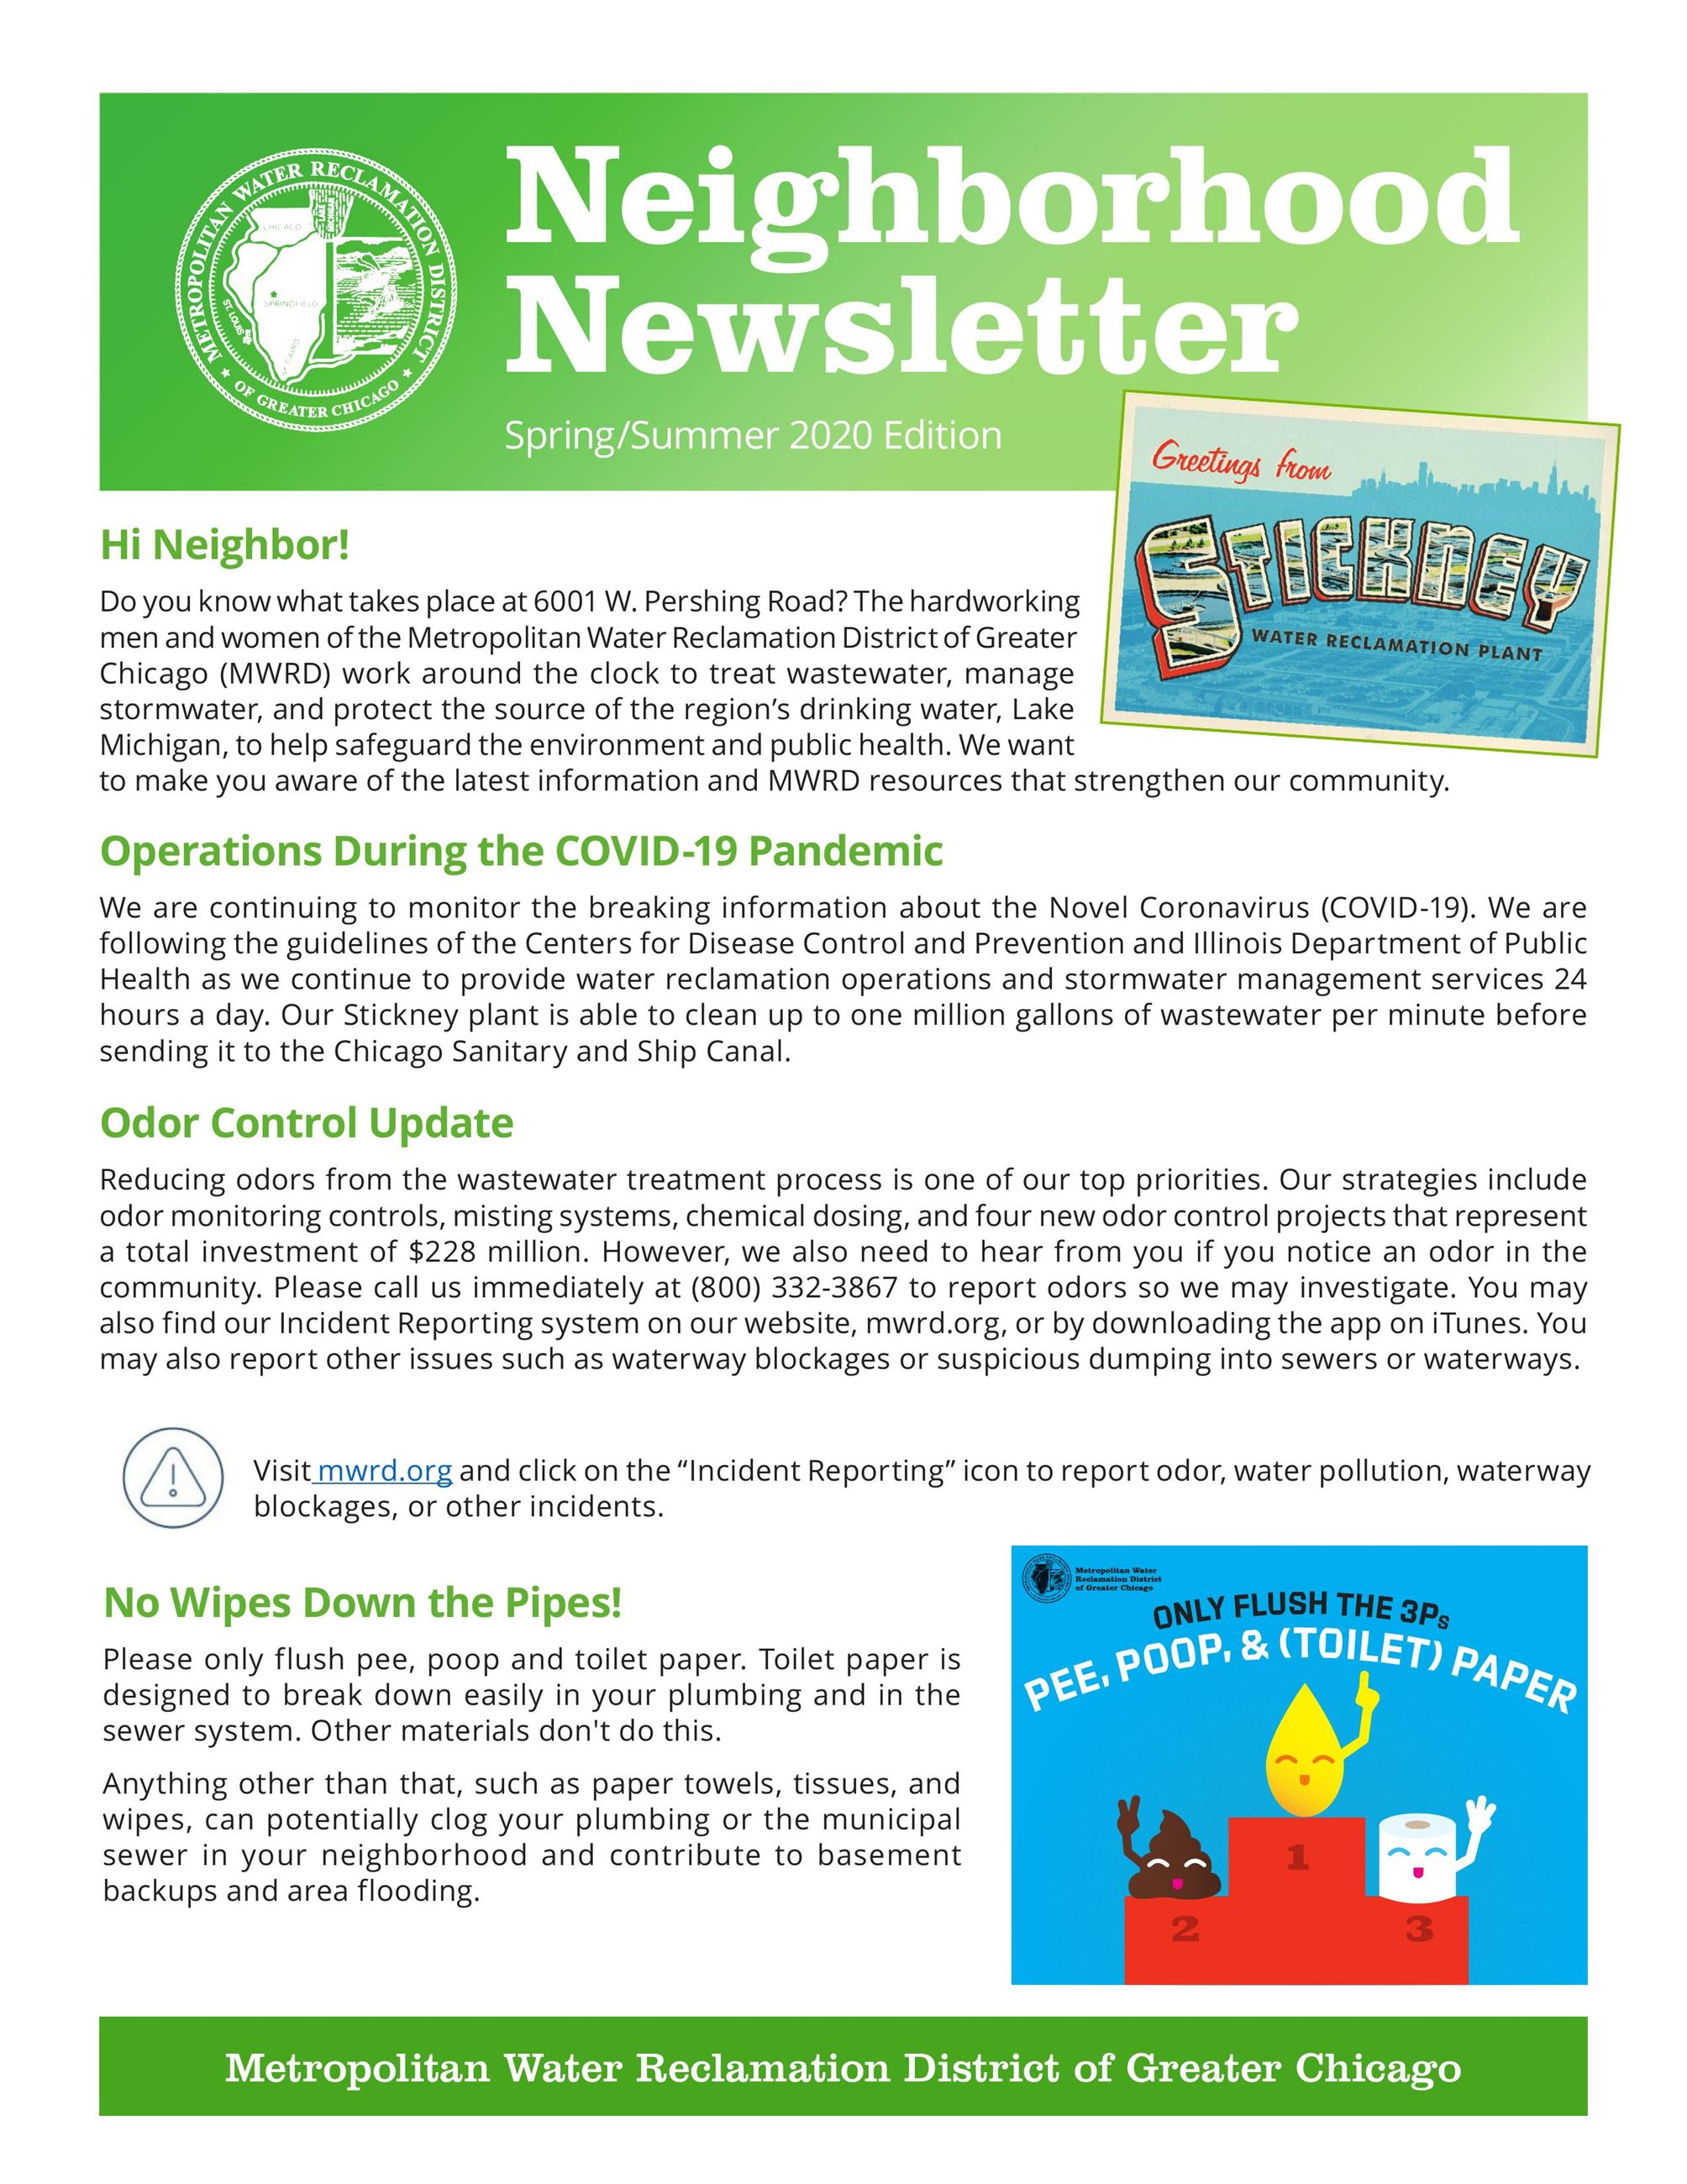 MWRD Neighborhood Newsletter English page 1